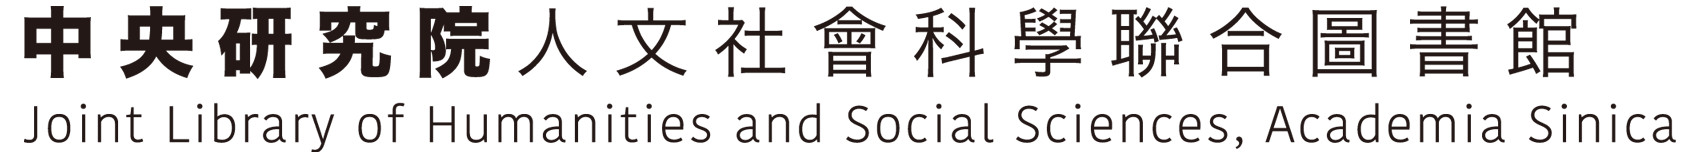 joint Library of Humanities and Social Science, Academia sinica